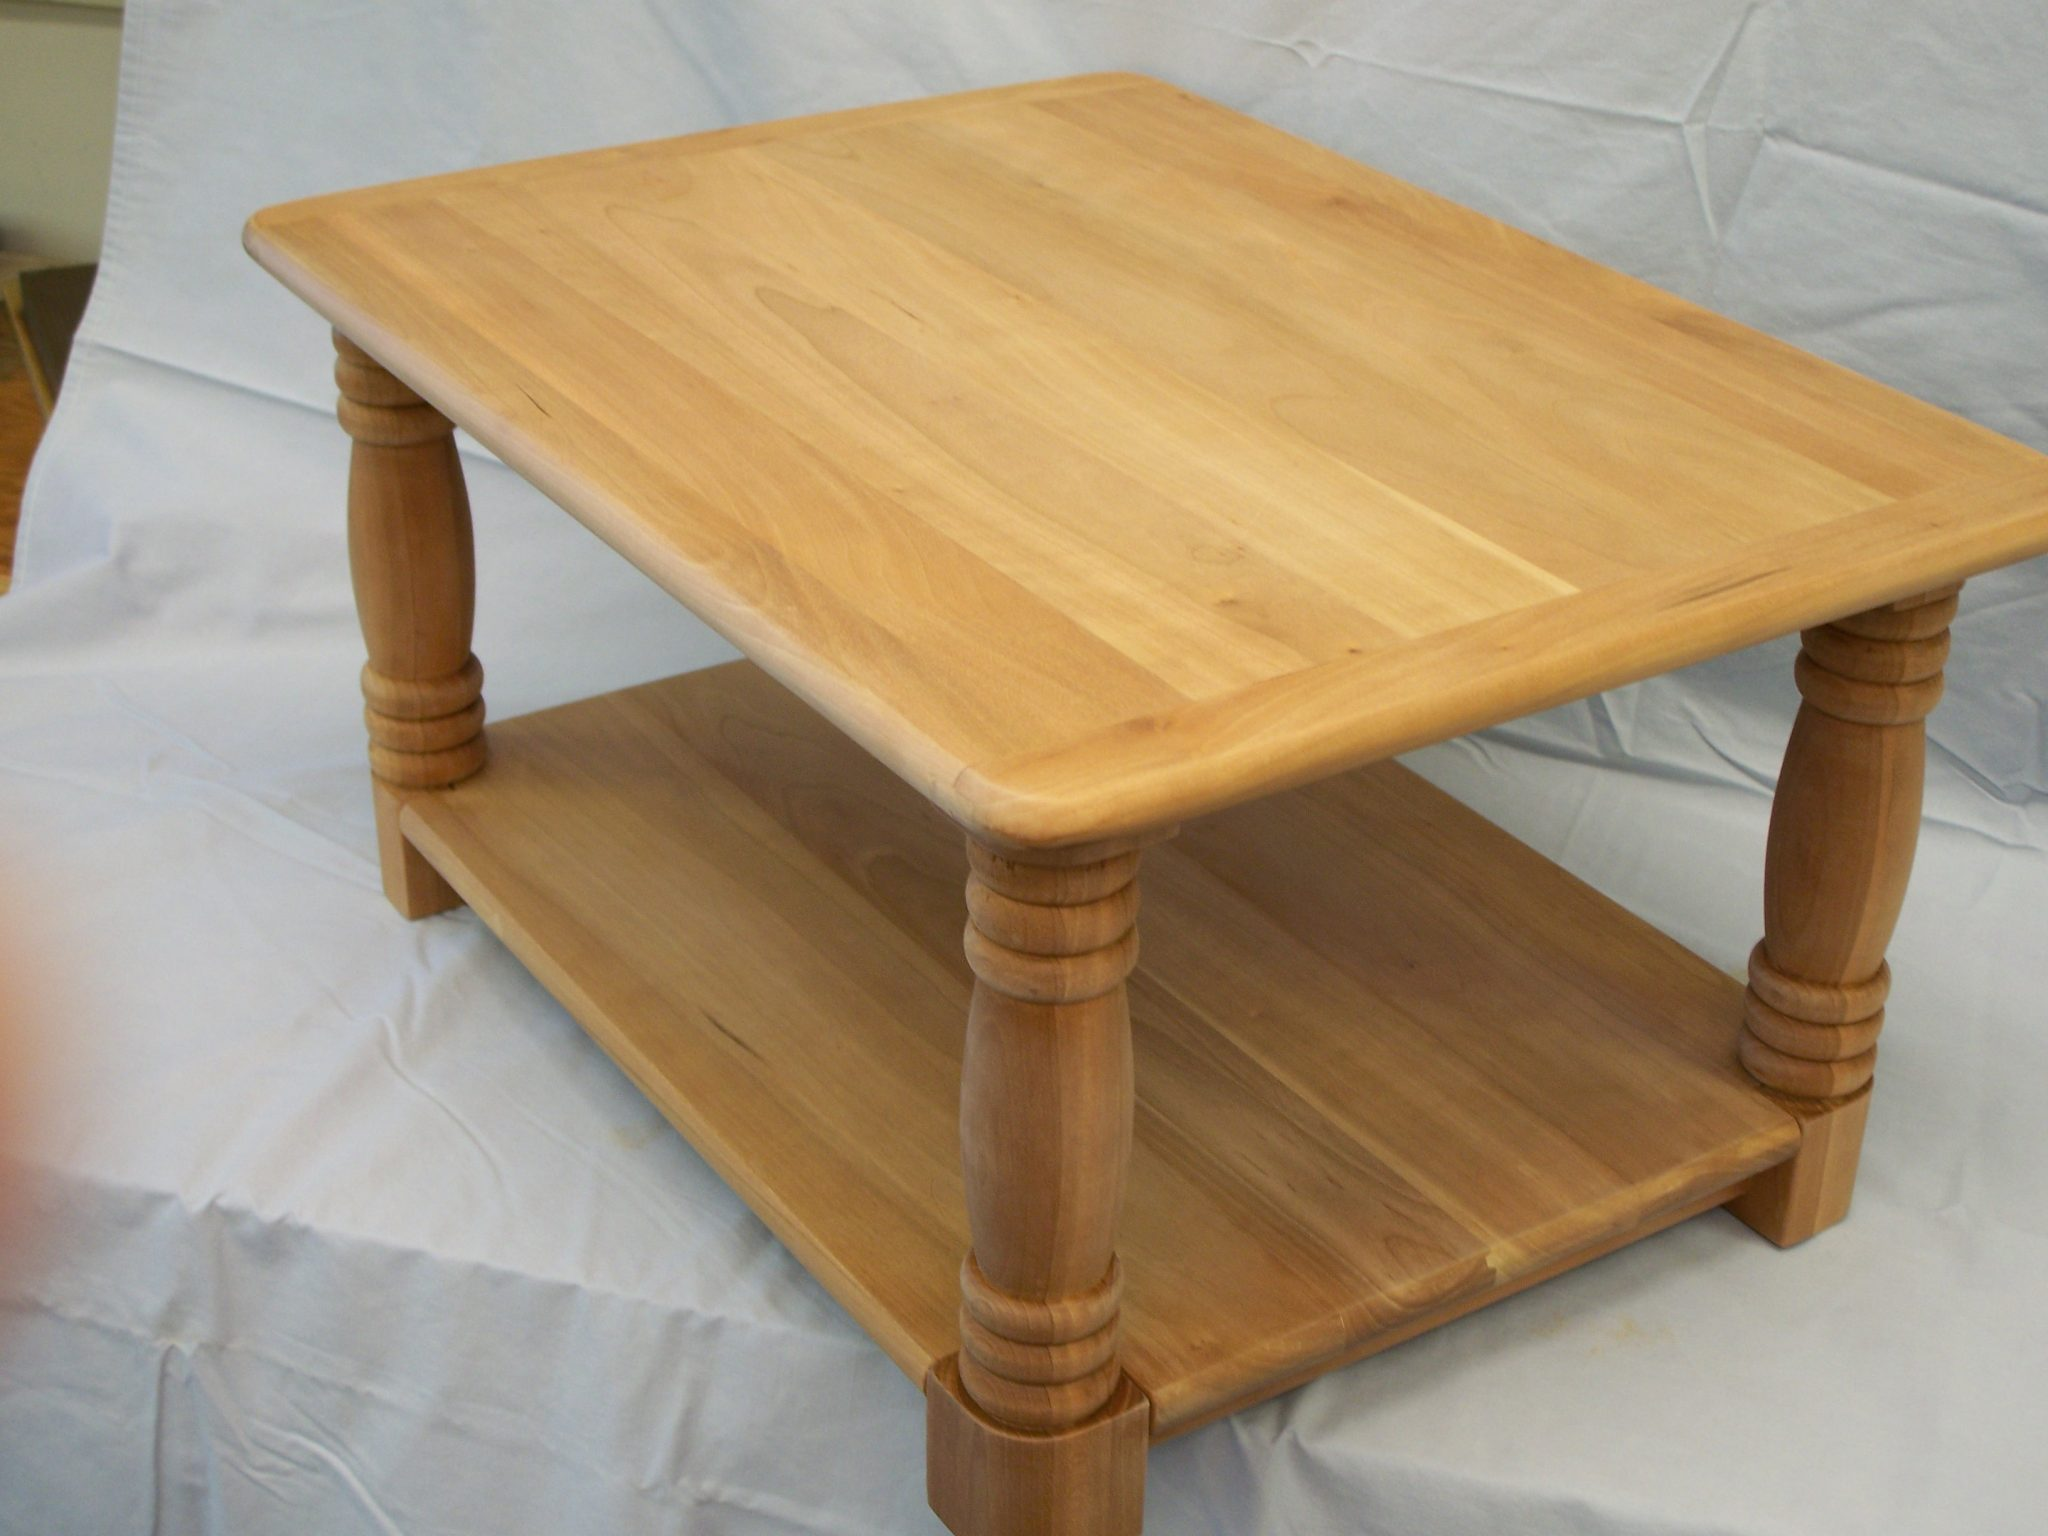 Cherry Trundle Table/Cart made for sliding a printer under a desk.